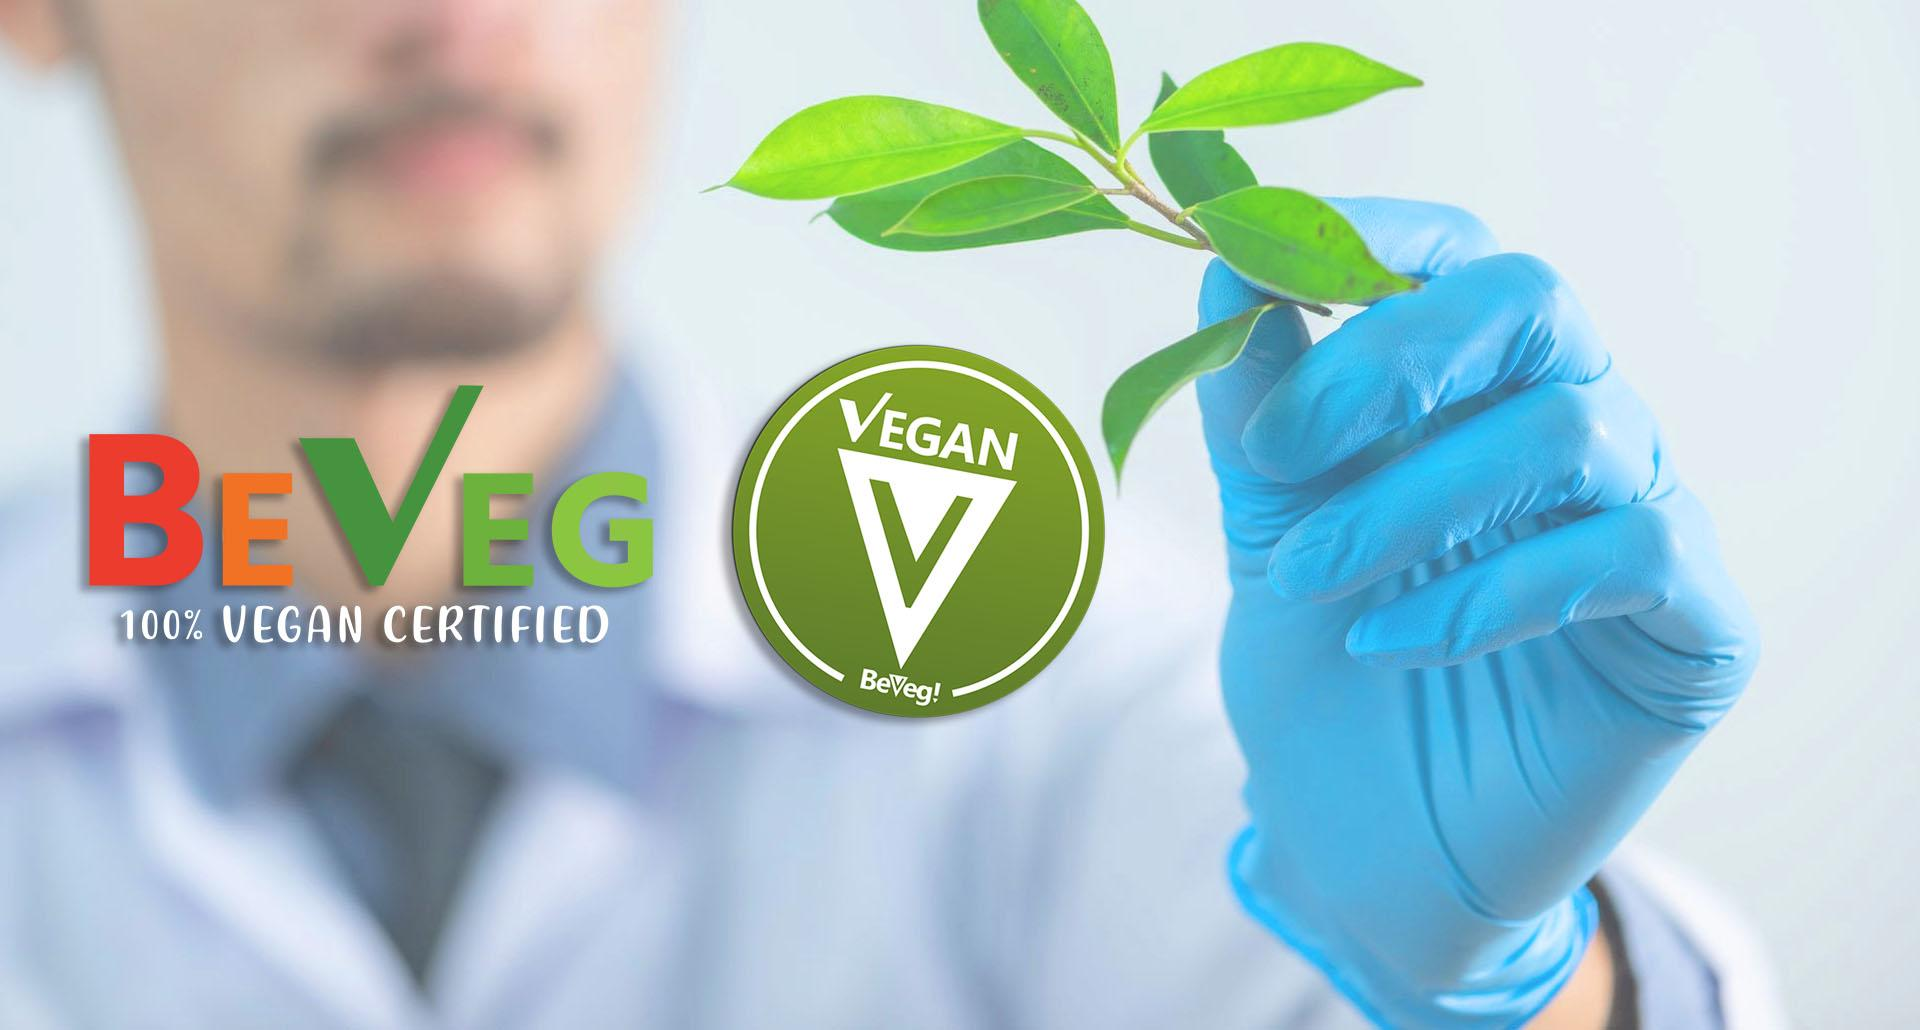 Beveg Certified Vegan - The Good Housekeeping Seal Of Approval For The Plant-based Consumer